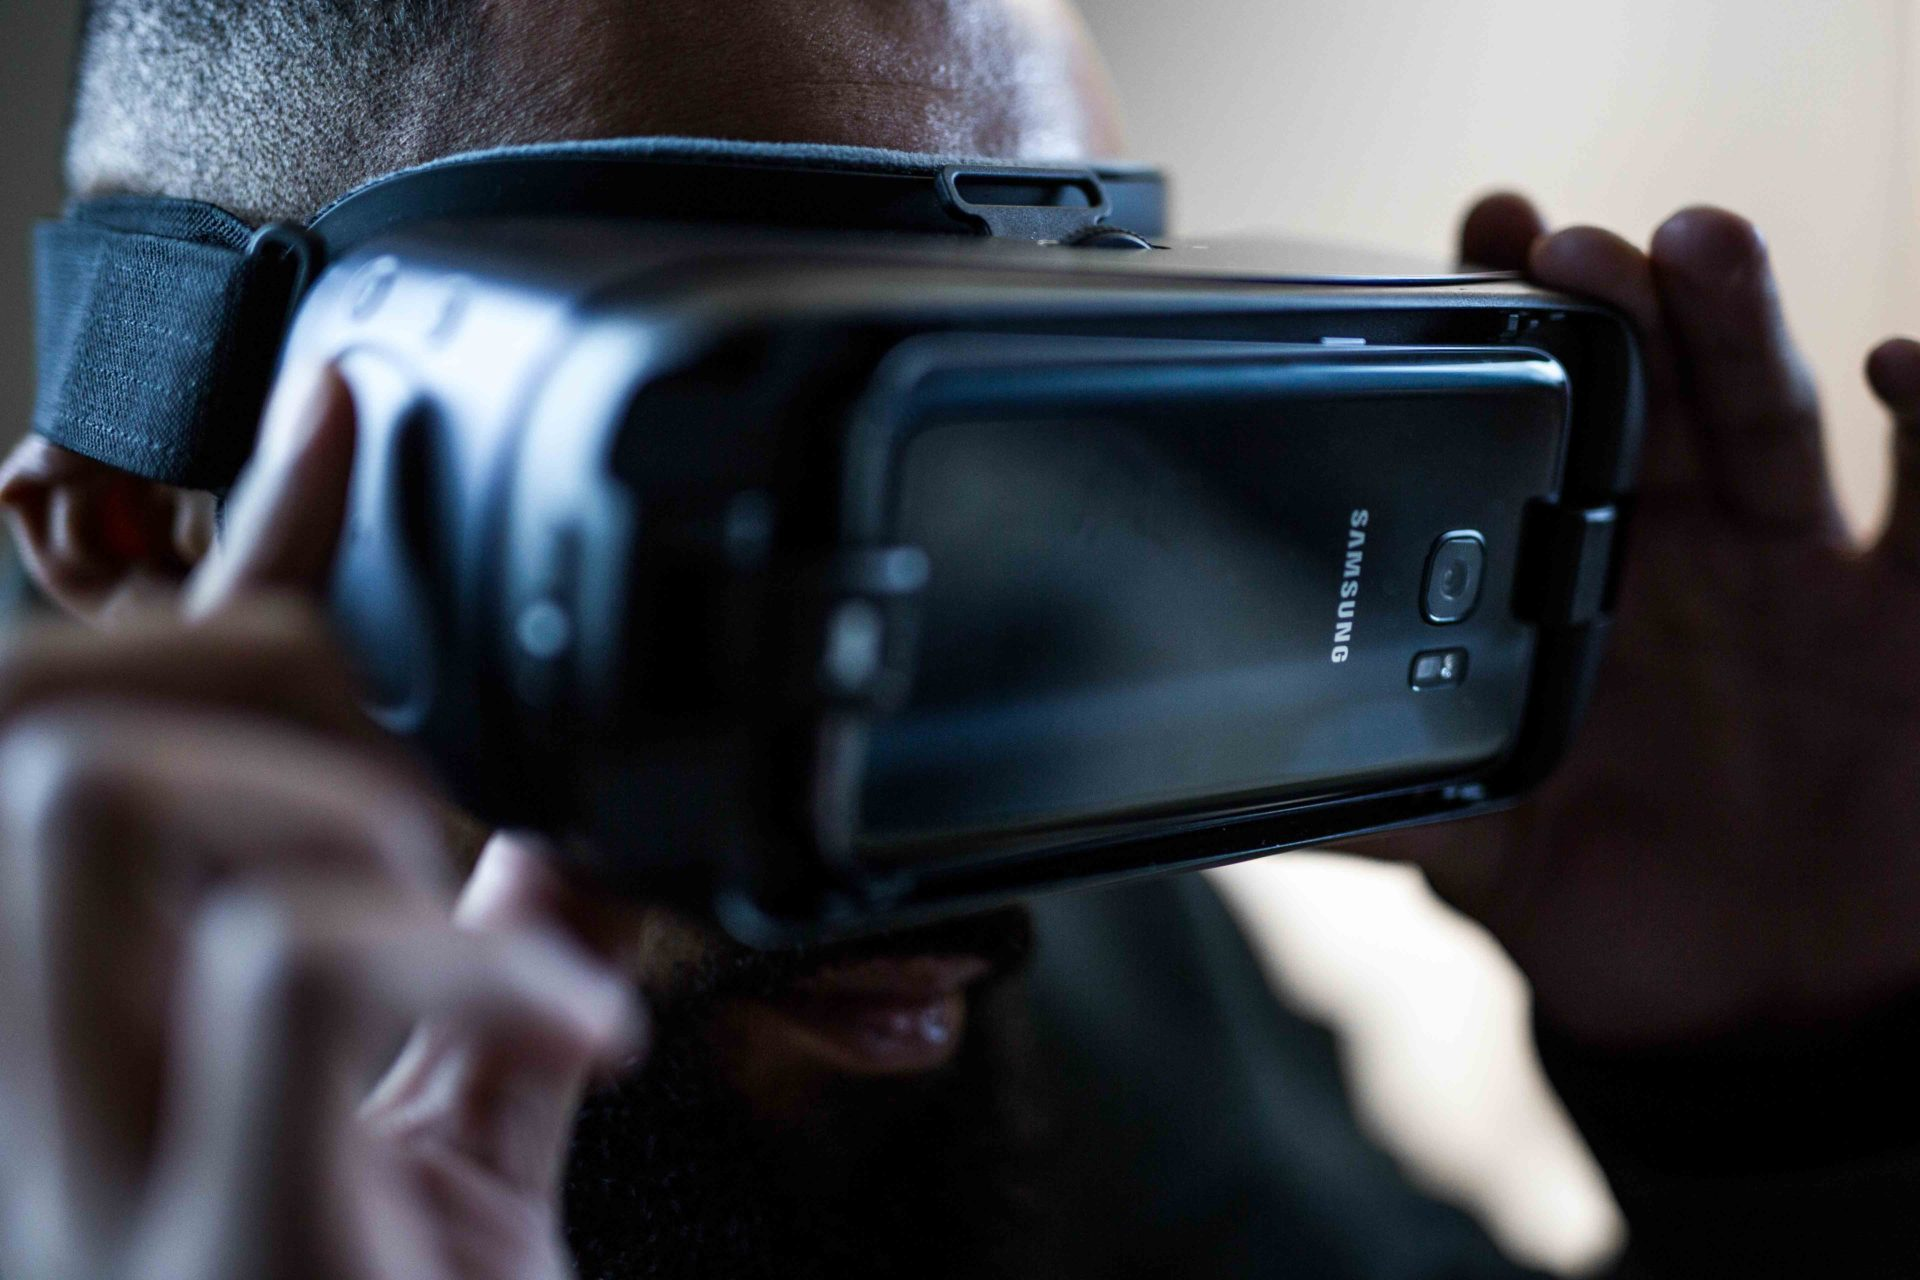 Samsung Virtual Reality Gear and Samsung S6Review